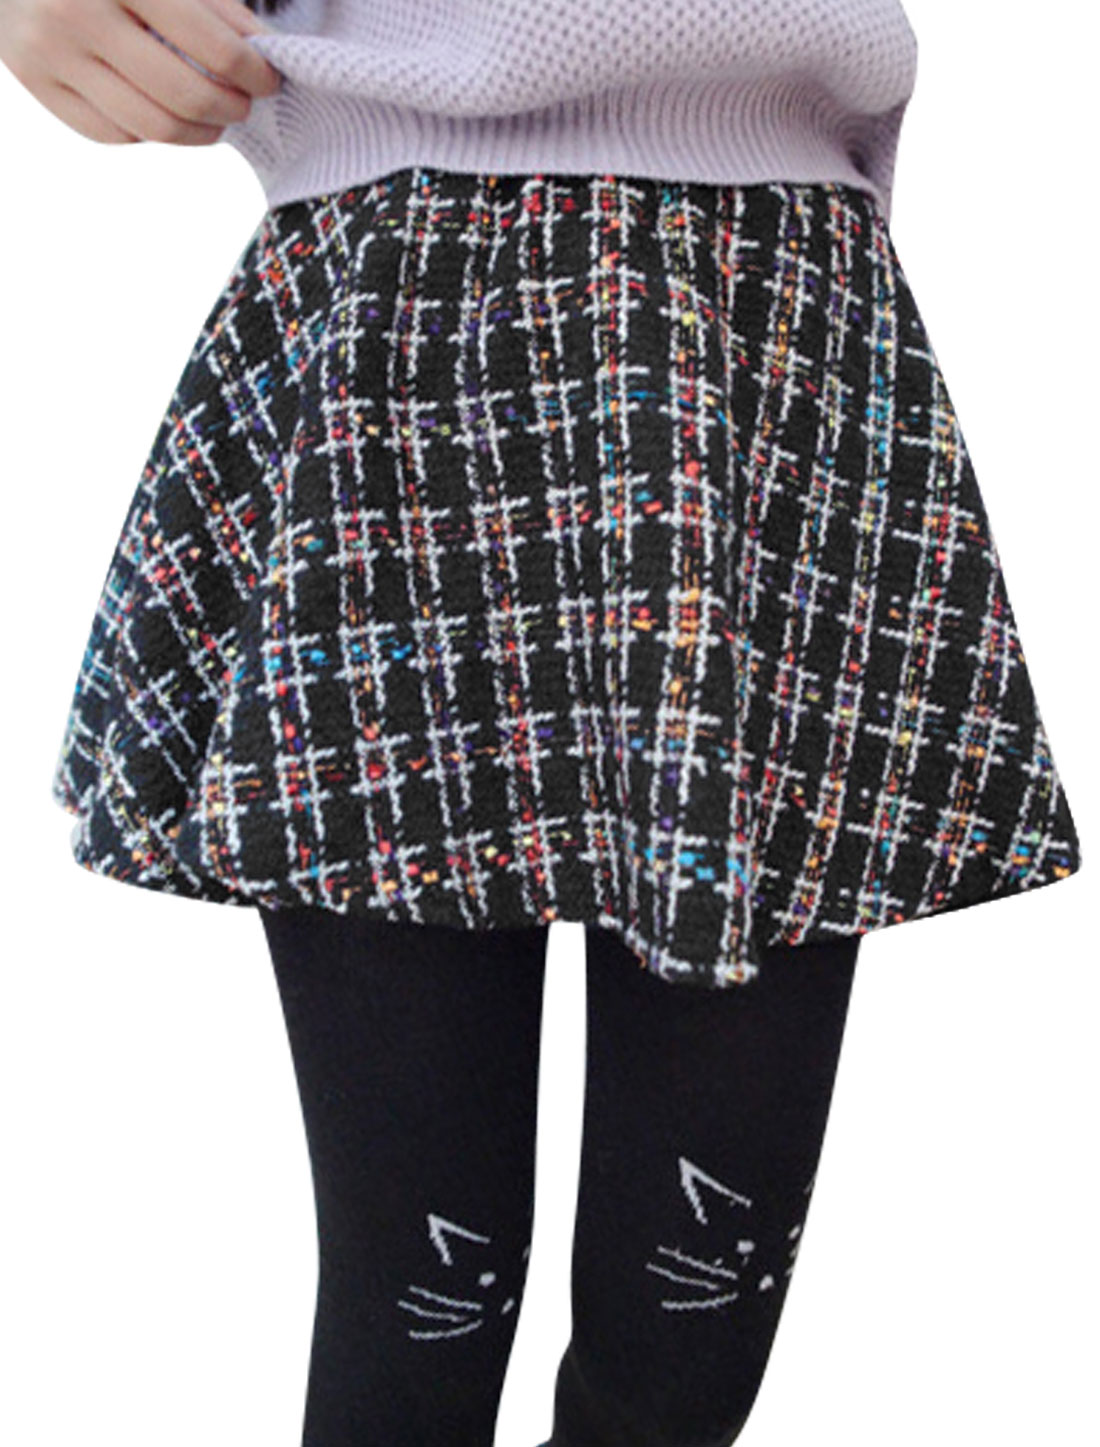 Natural Waist Textured Design Casual A-Line Skirt for Women Black Multicolor XS